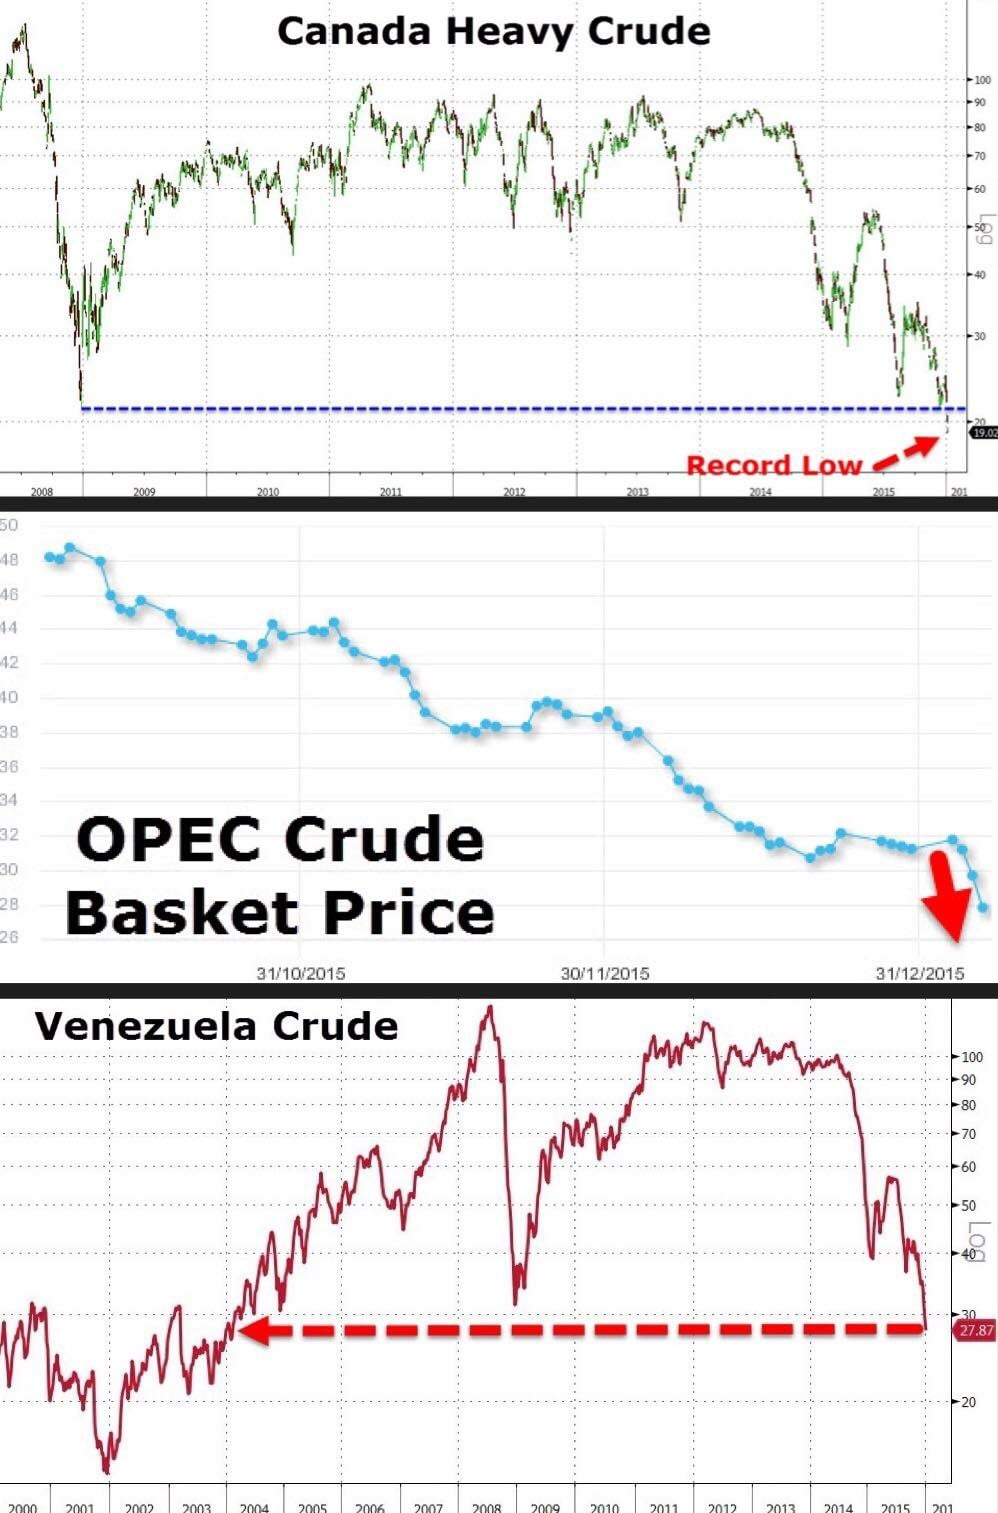 """It's not just WTI and Brent crude that are crashing through their 2009 lows. Crude #oil prices all across the world, chiefly amongst #OPEC, #Canada, and Venezuela have either set record lows or are testing them.""   Business Of Finance on Facebook, 9 January 2016"